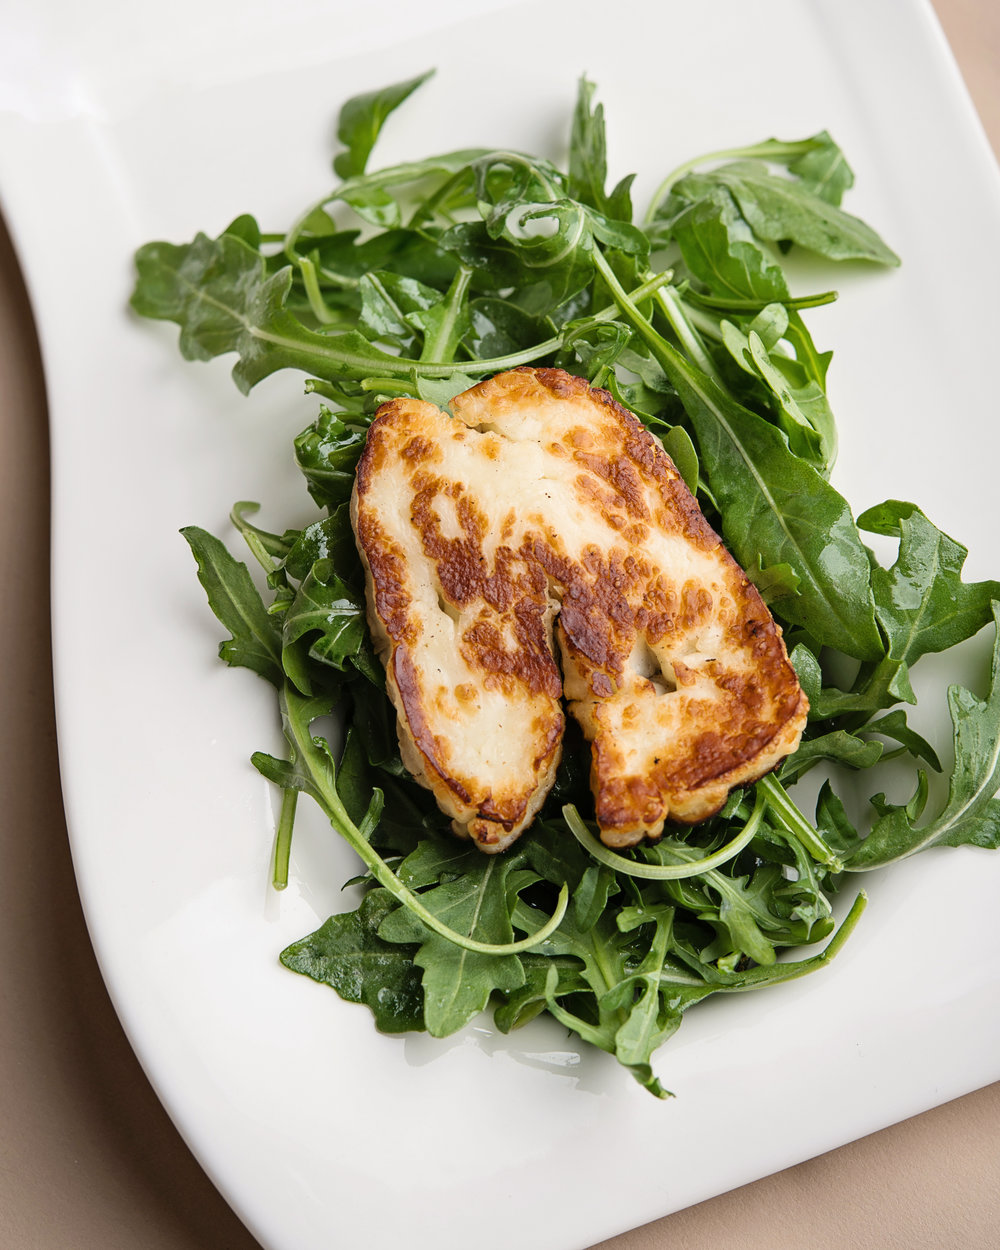 Arugula salad with           grilled halloumi